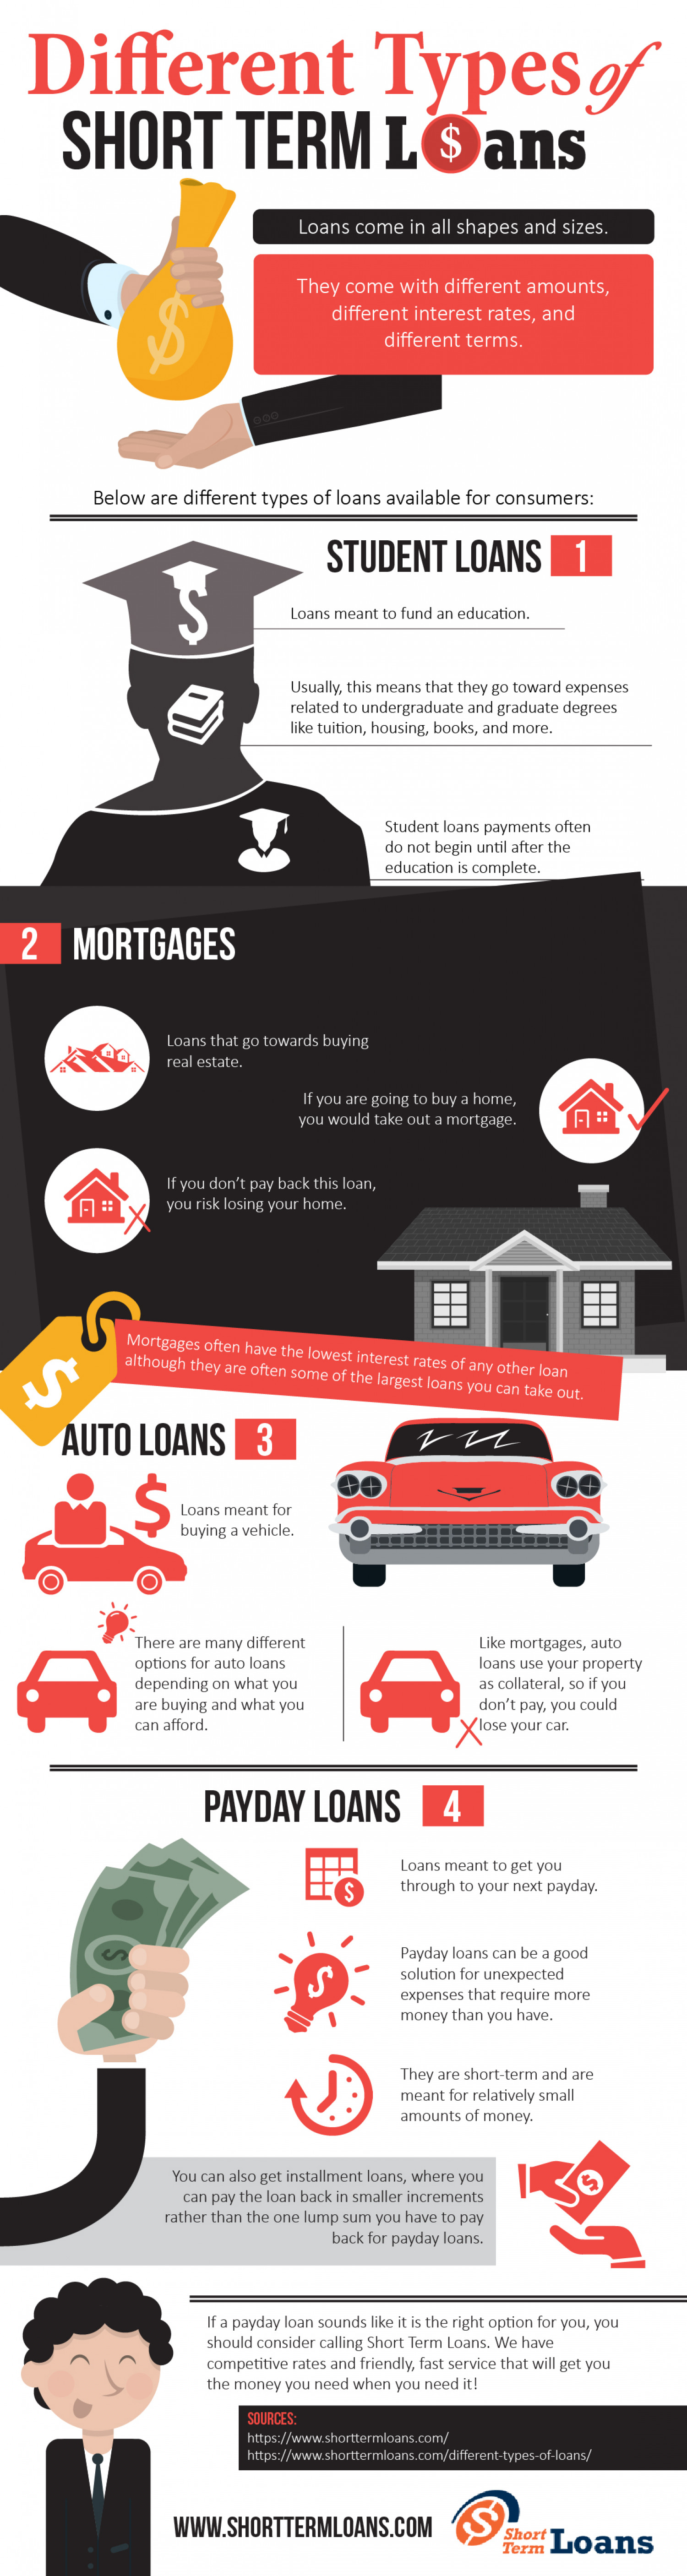 Different Types of Short Term Loans - Infographic Infographic